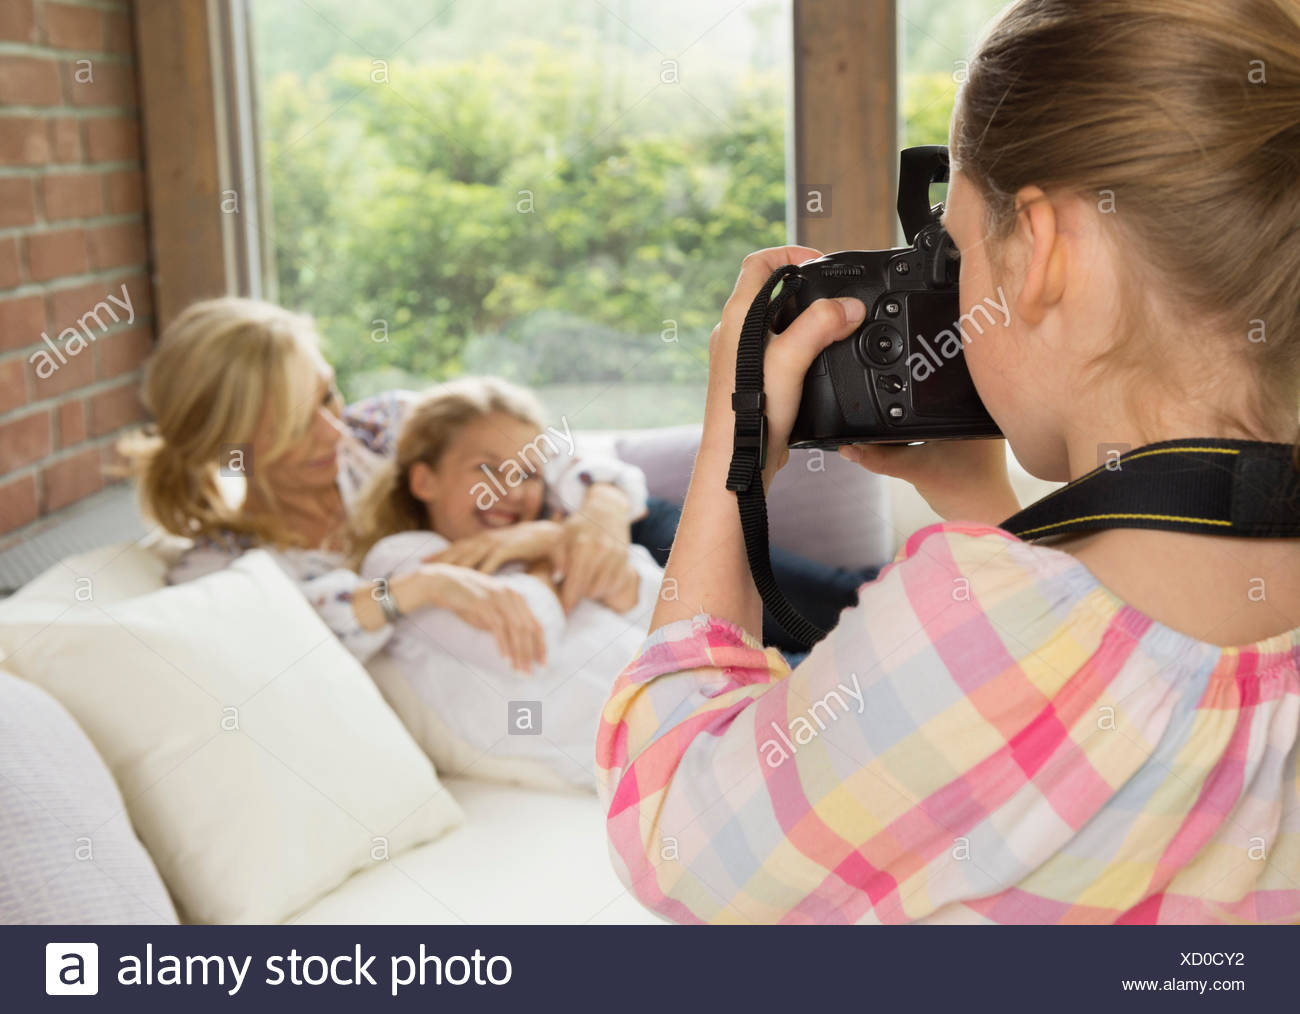 Daughter taking photograph of mother and sister - Stock Image